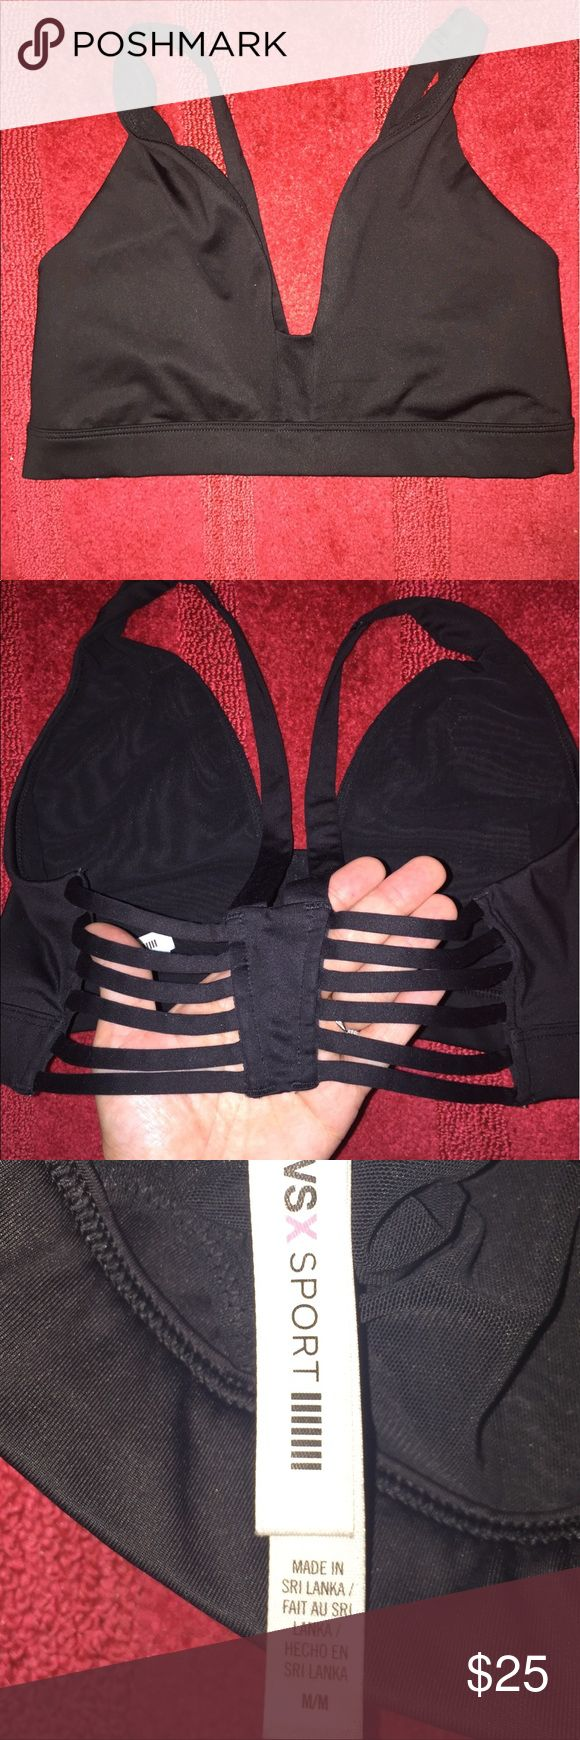 🖤💋Victoria Secret Sports Bra -Size Medium💋🖤 🖤💋Victoria secret sports bra size-Medium. This is used. Has some wear but overall good condition. The last photo shows where I cut out the bra pads that were inside the bra. I no longer have the pads. To me they didn't fit correctly inside the sports bra so I removed. It looks better without the pads I'm sure everyone will agree. But Do Note that small cut in the inside *not Visibleom outside of Bra*💋🖤 Victoria's Secret Intimates…